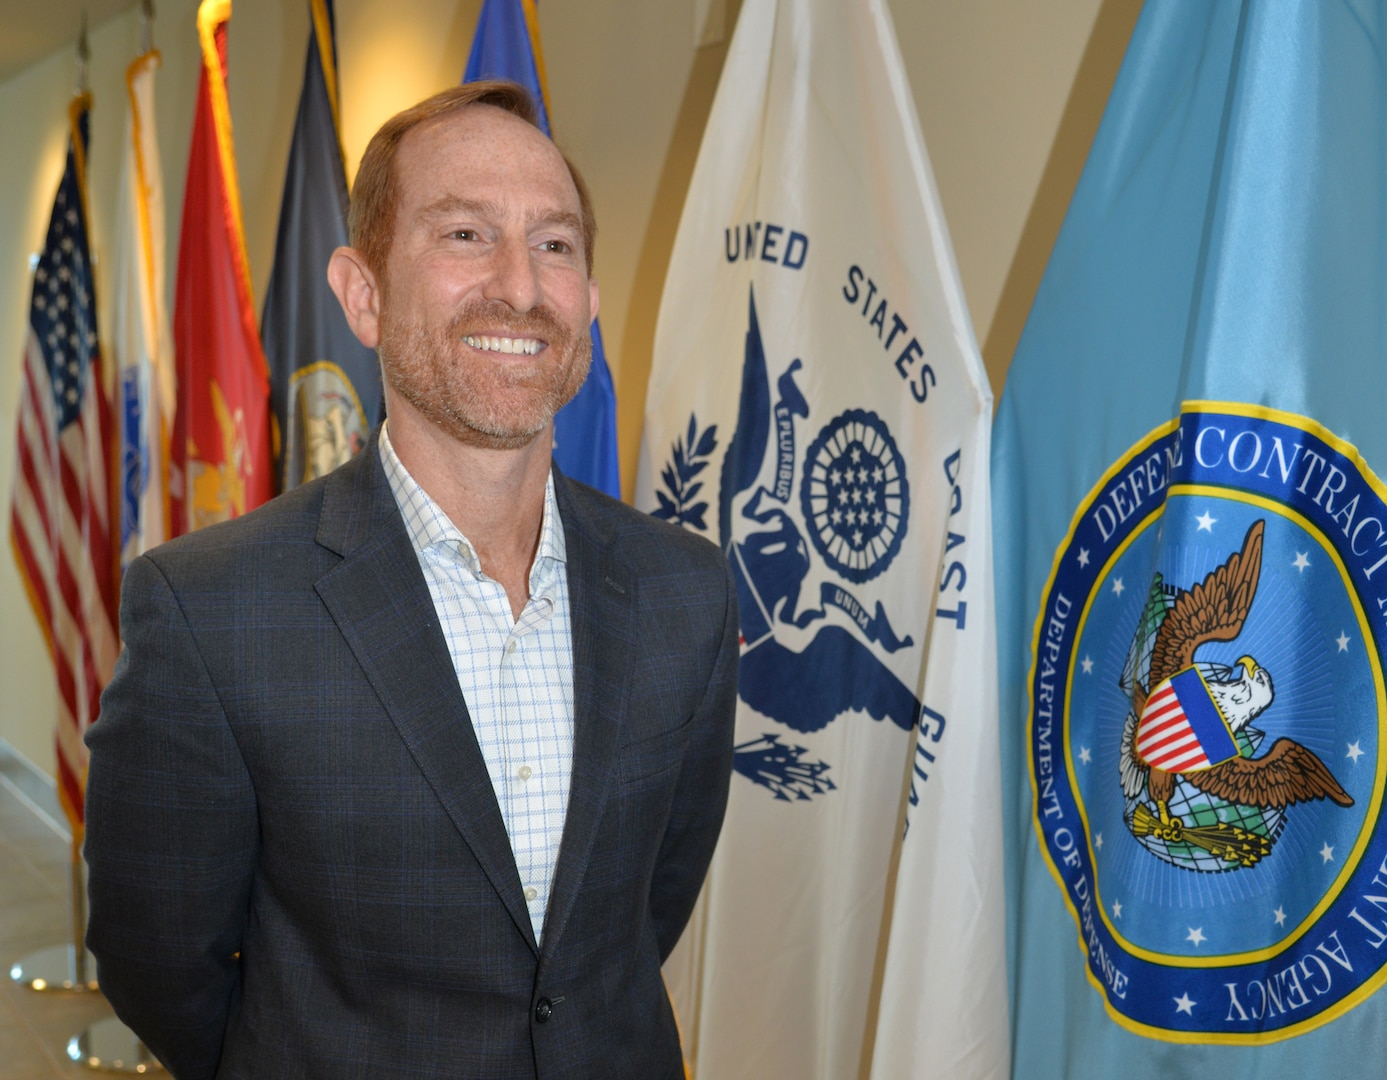 A smiling man stands beside a row of military flags